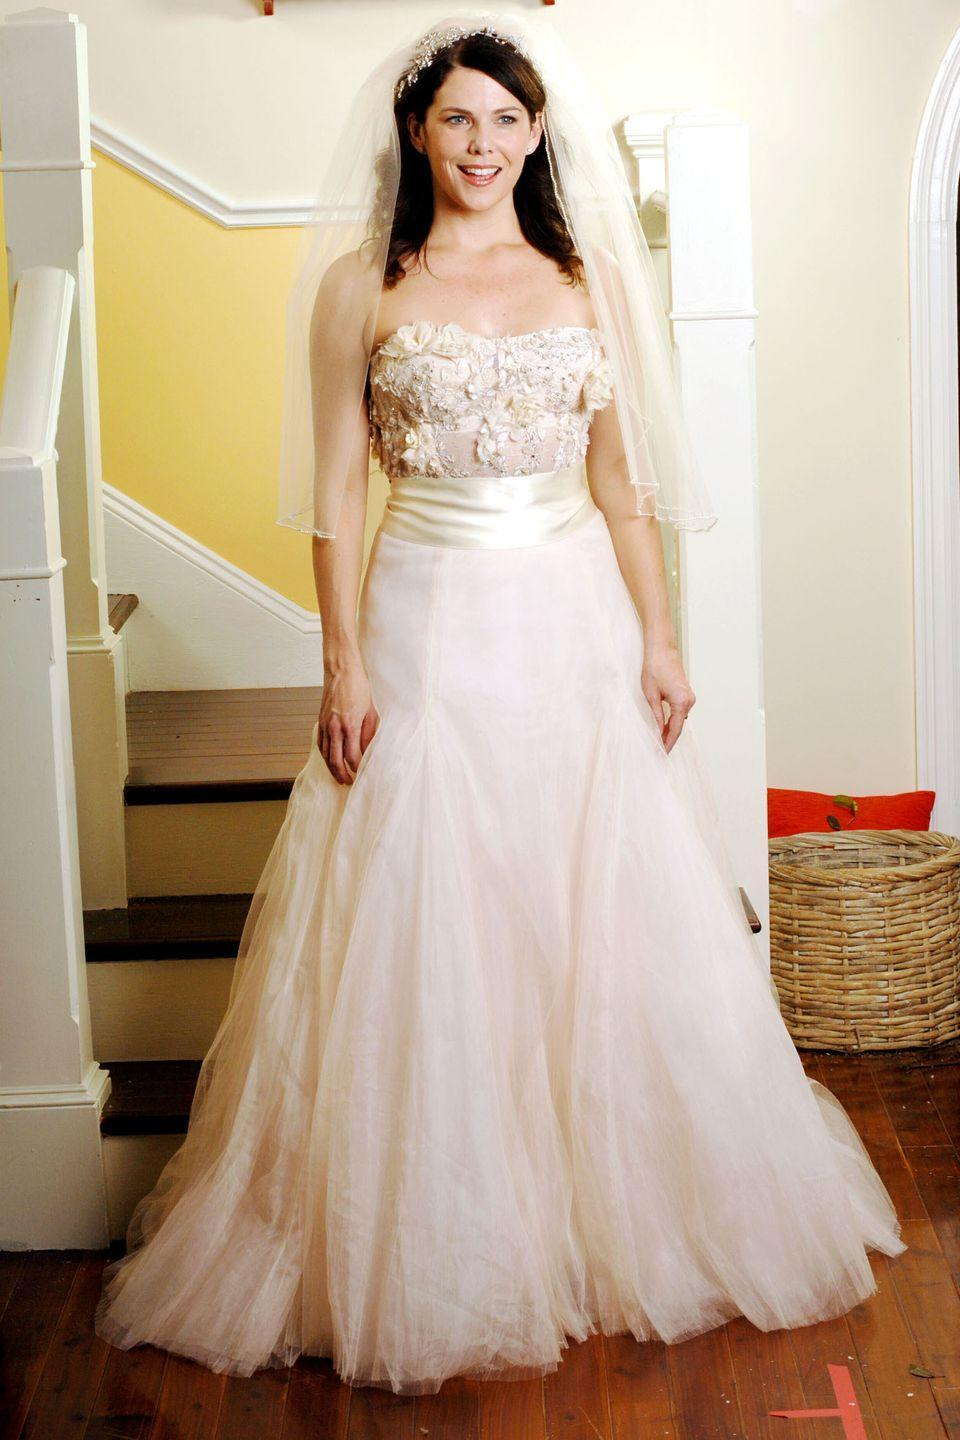 "<p>In a season 6 episode titled ""The Perfect Dress,"" Lorelei attempts to find just that for her upcoming wedding to Luke. She goes dress shopping with Sookie and comes across the perfect blush satin dress with a flowered bodice — which also happened to be on sale!</p>"